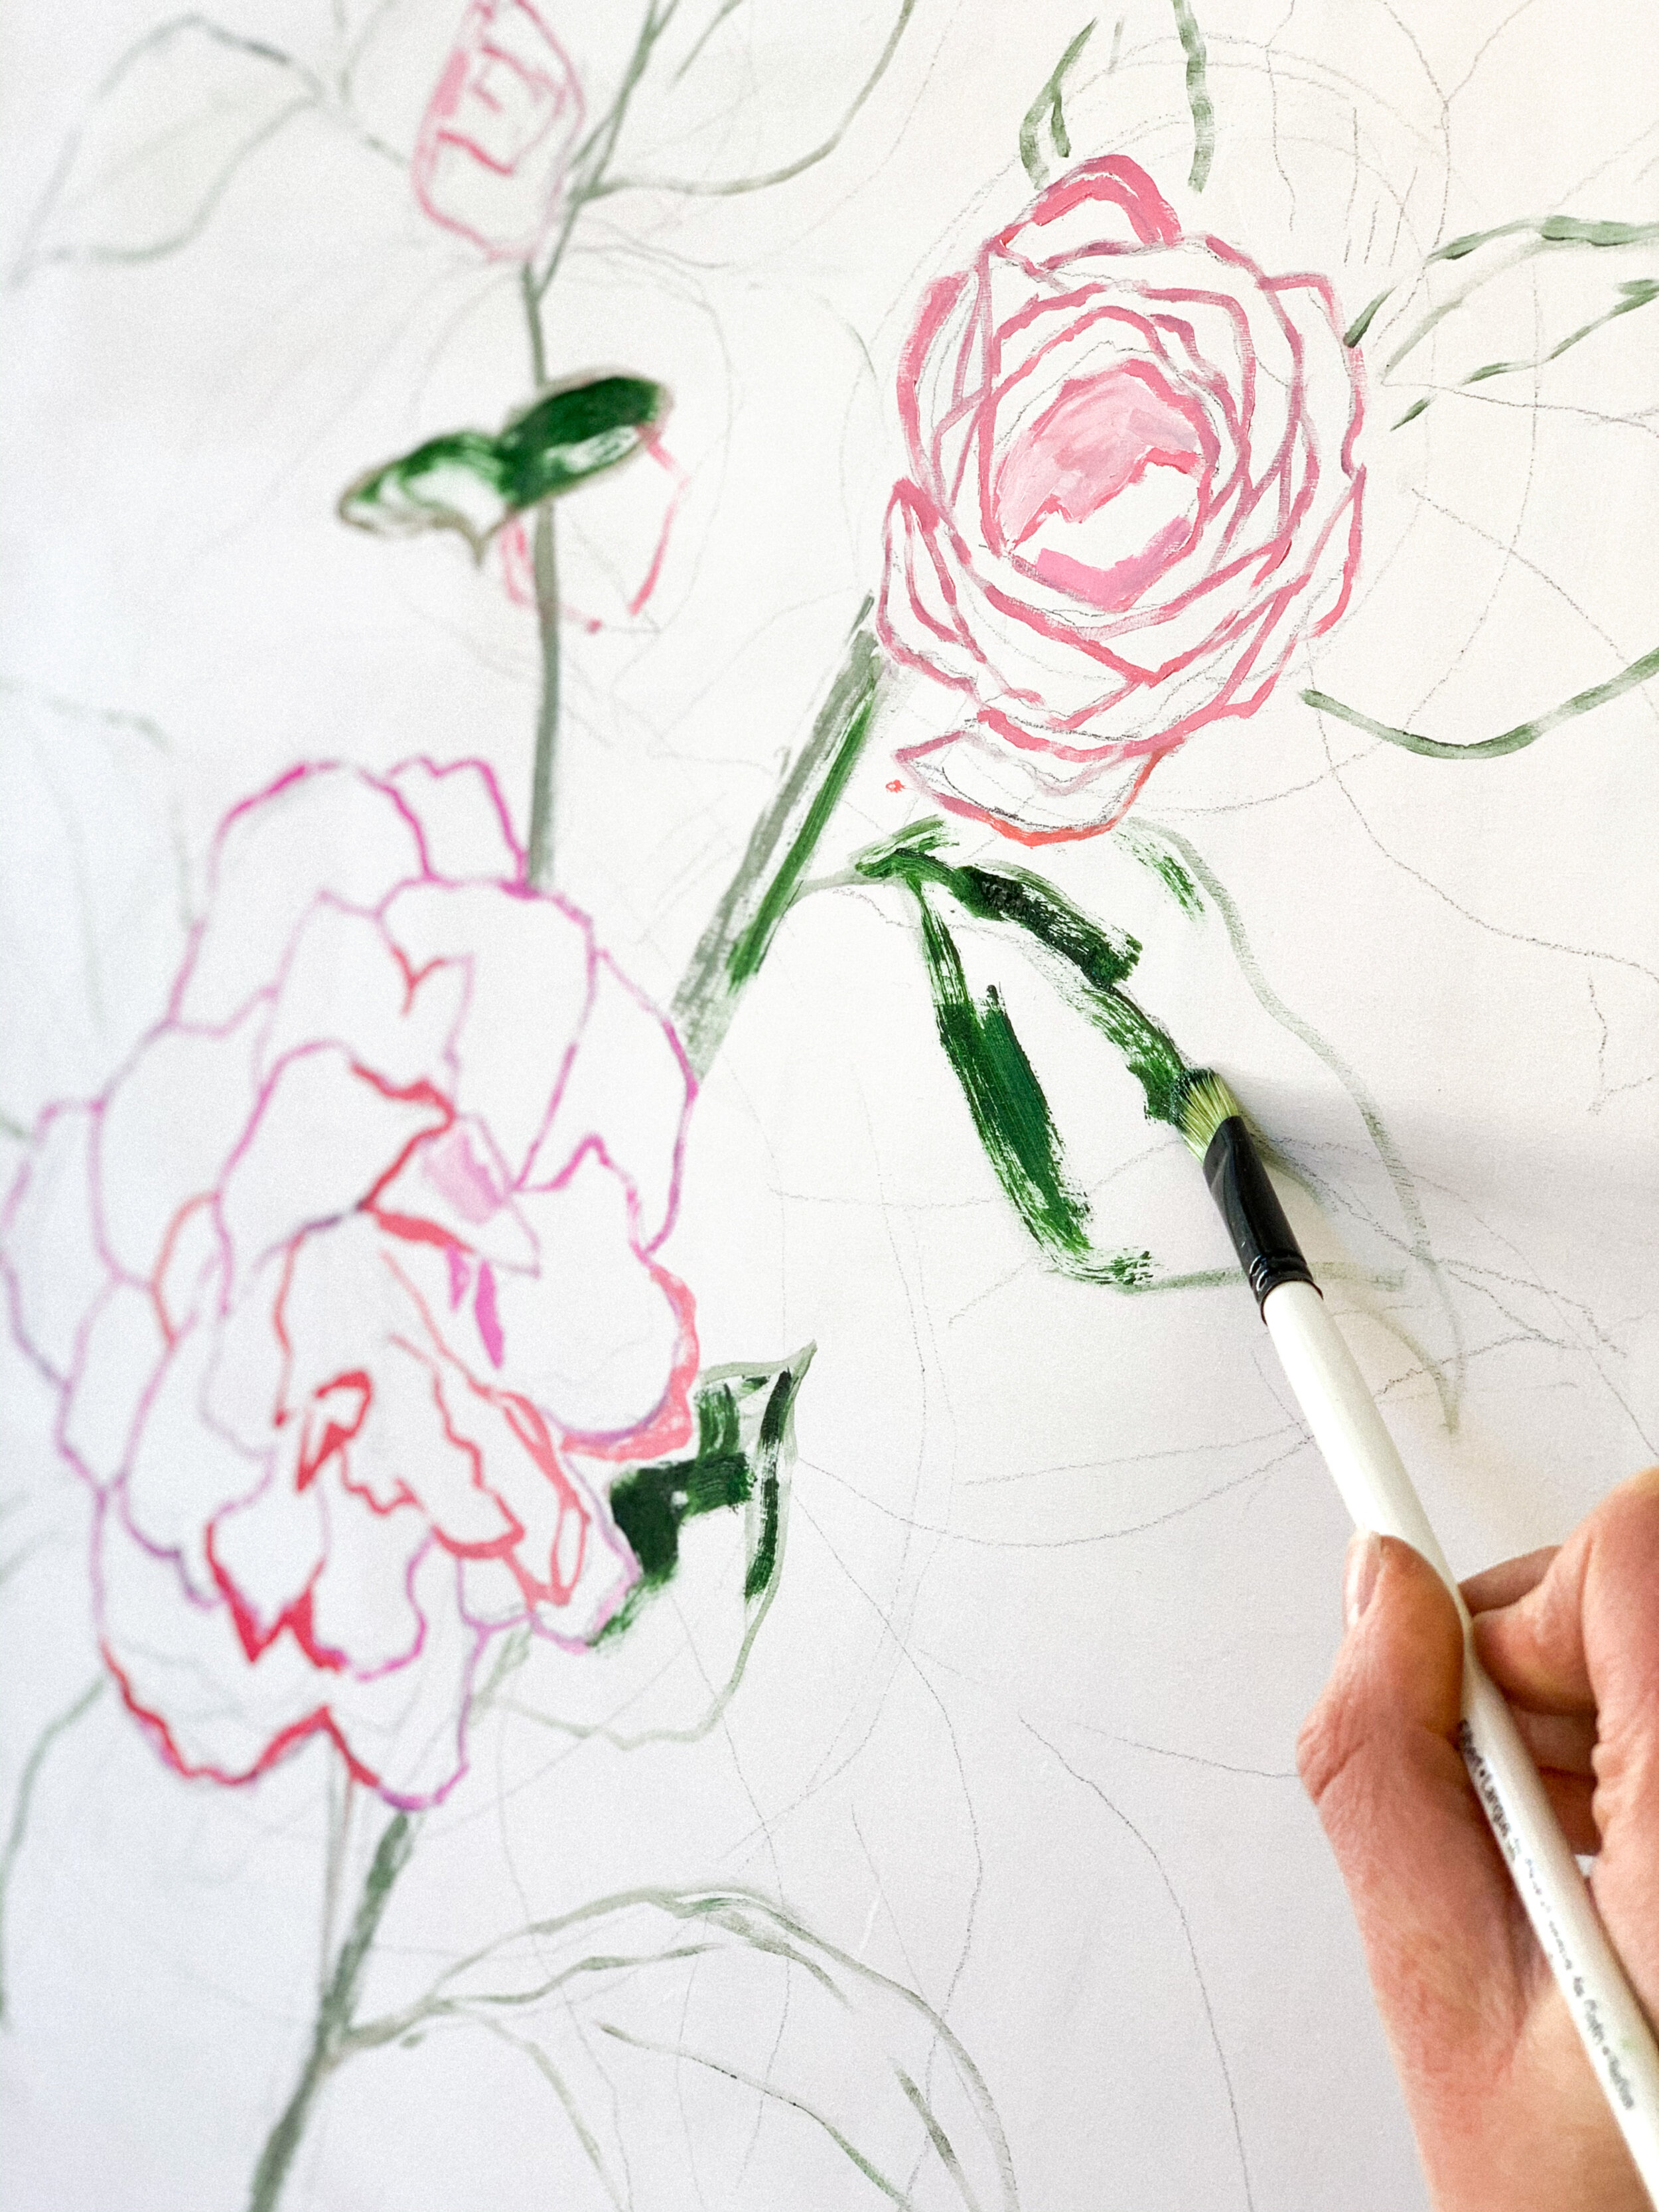 Started on a special Camellia commission